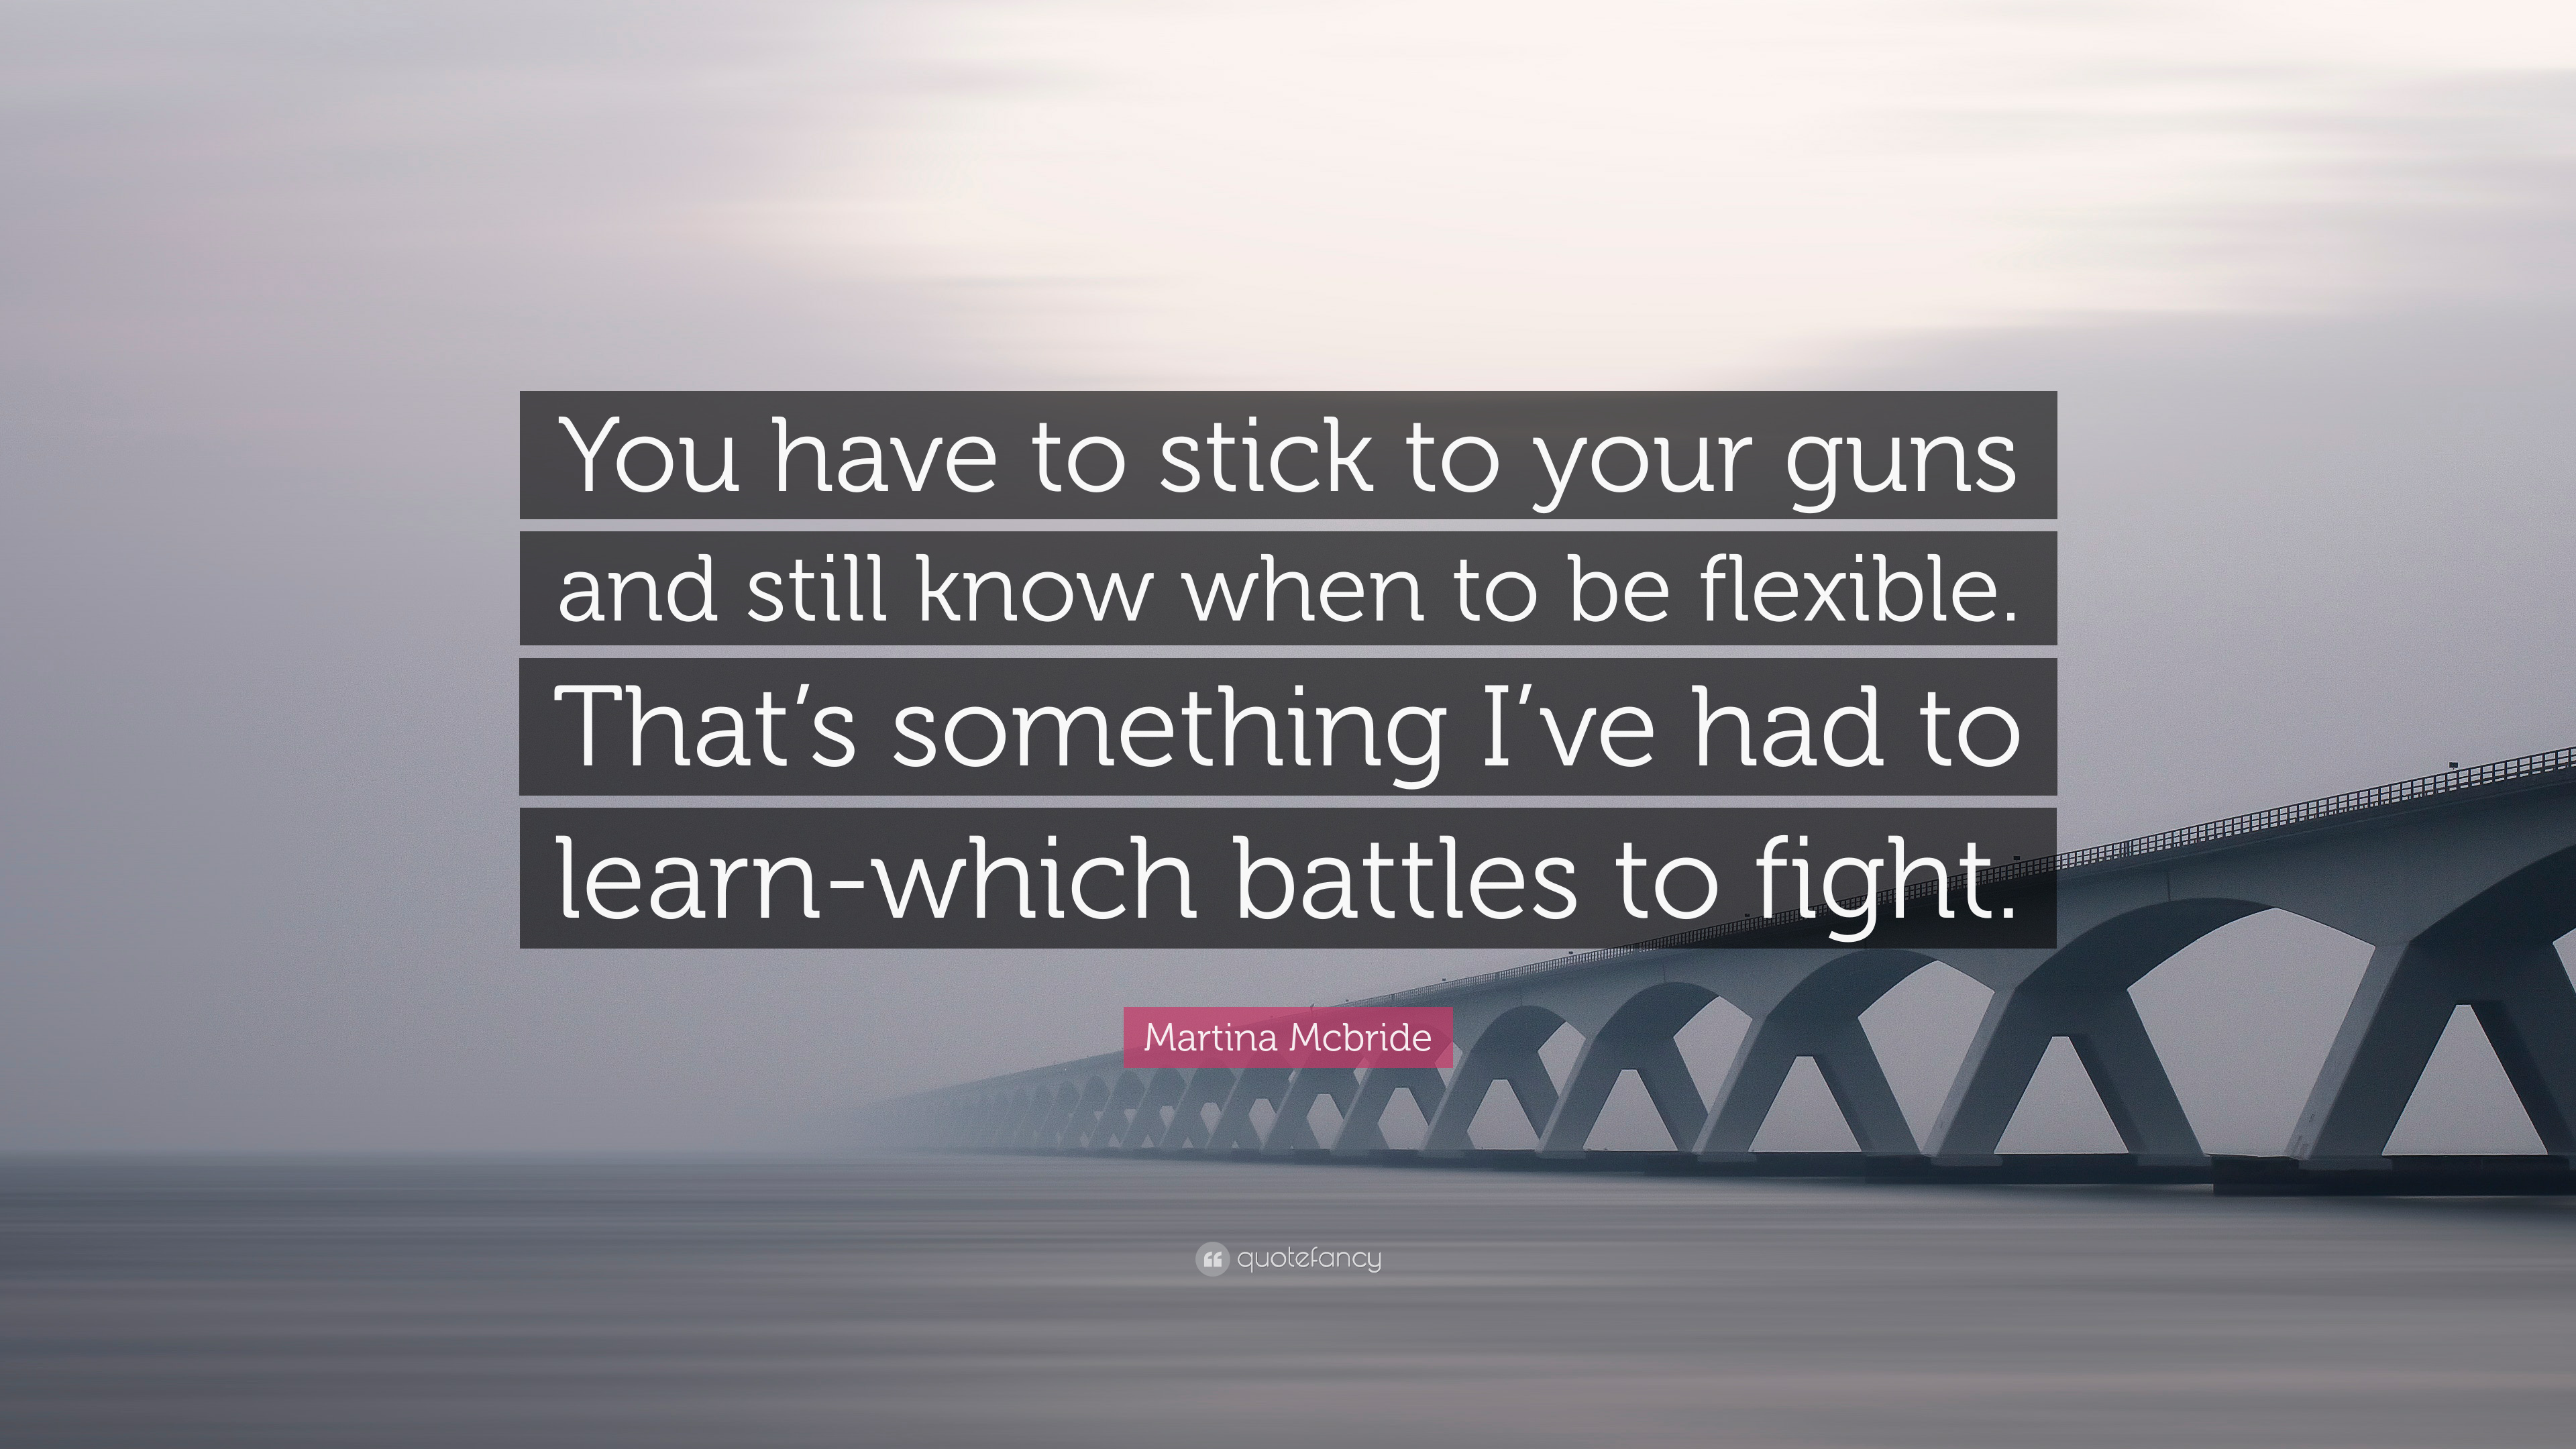 Martina Mcbride Quote You Have To Stick To Your Guns And Still